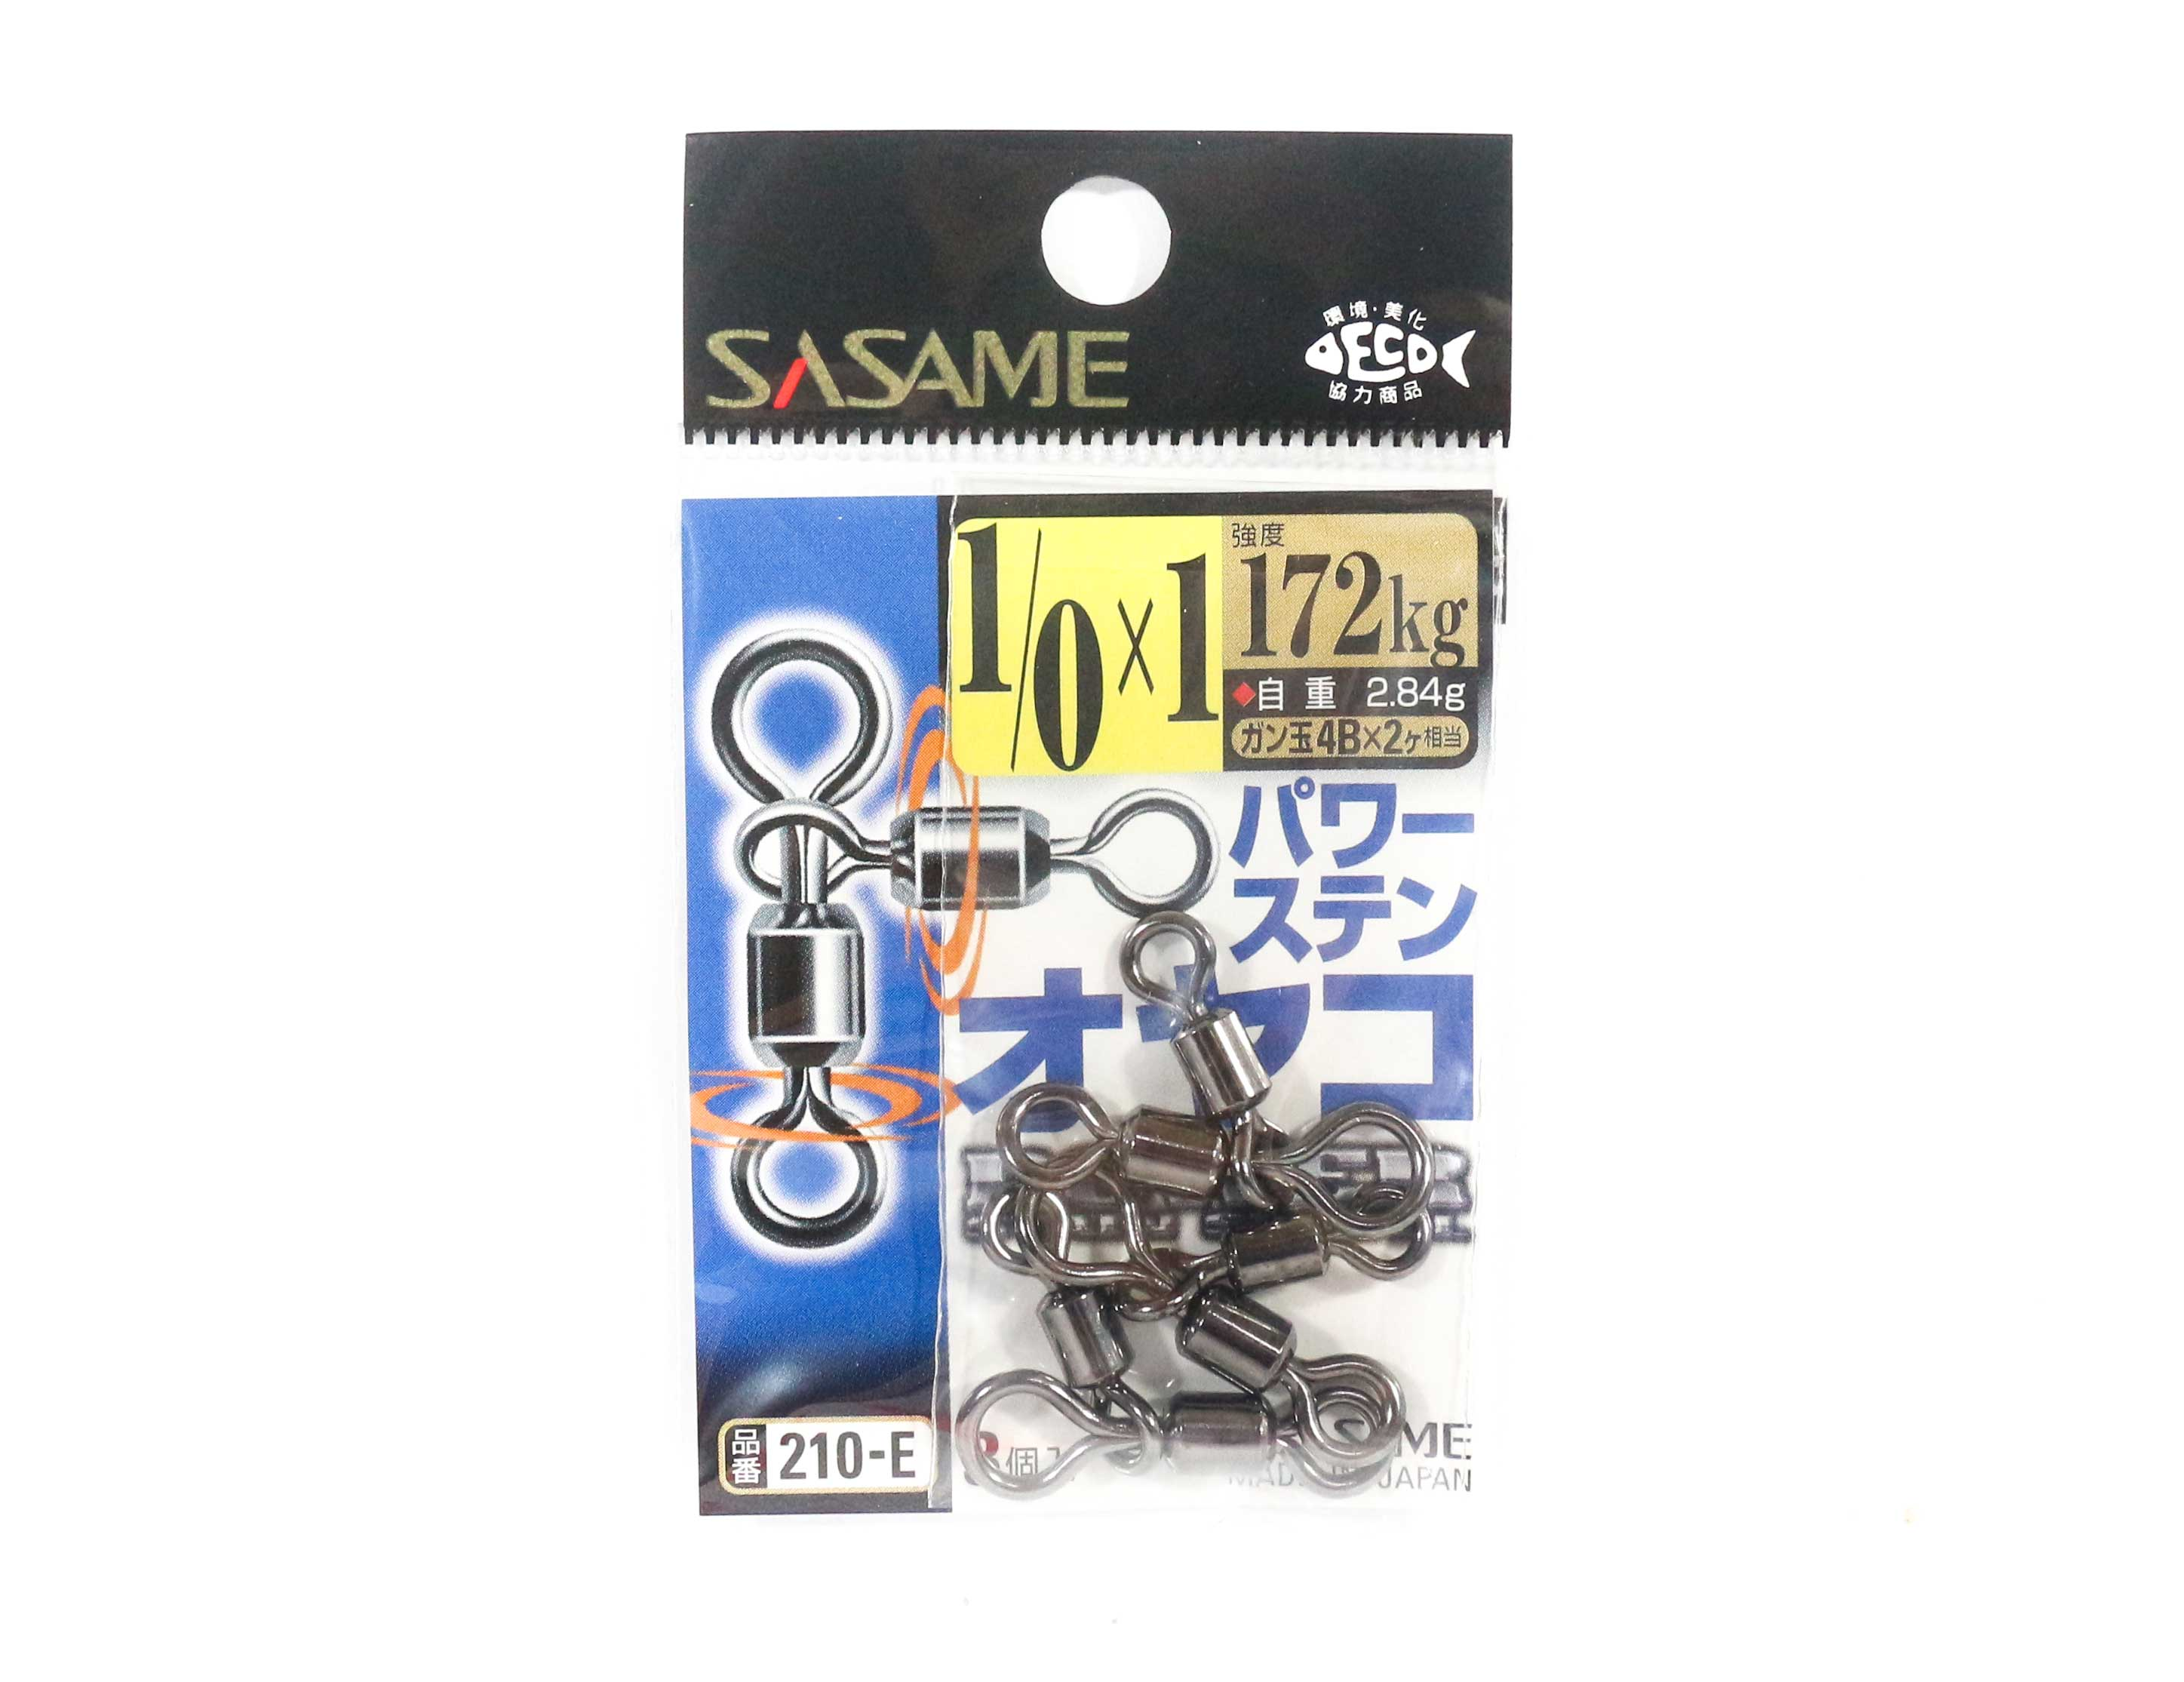 Sasame 210-E 3 Way Power Stain Swivel Black Size 1/0 x 1 (1478)